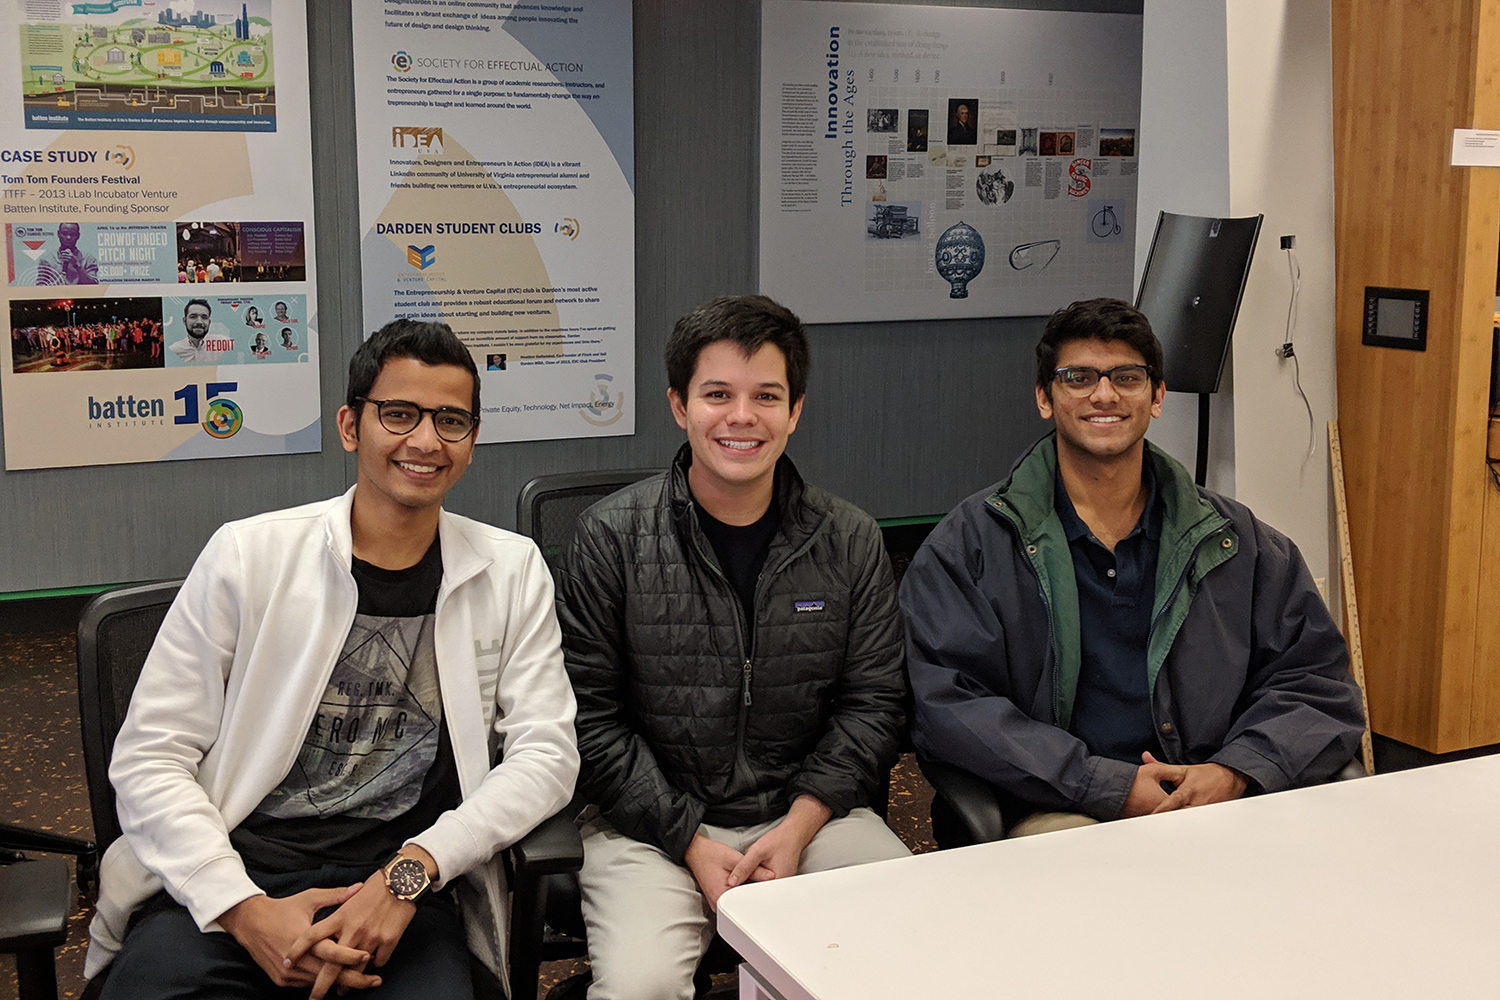 The PurPics team of Raahish Kalaria, Victor Layne and Aneesh Dhawan are applying principles of social entrepreneurship to reach Generation Z consumers.